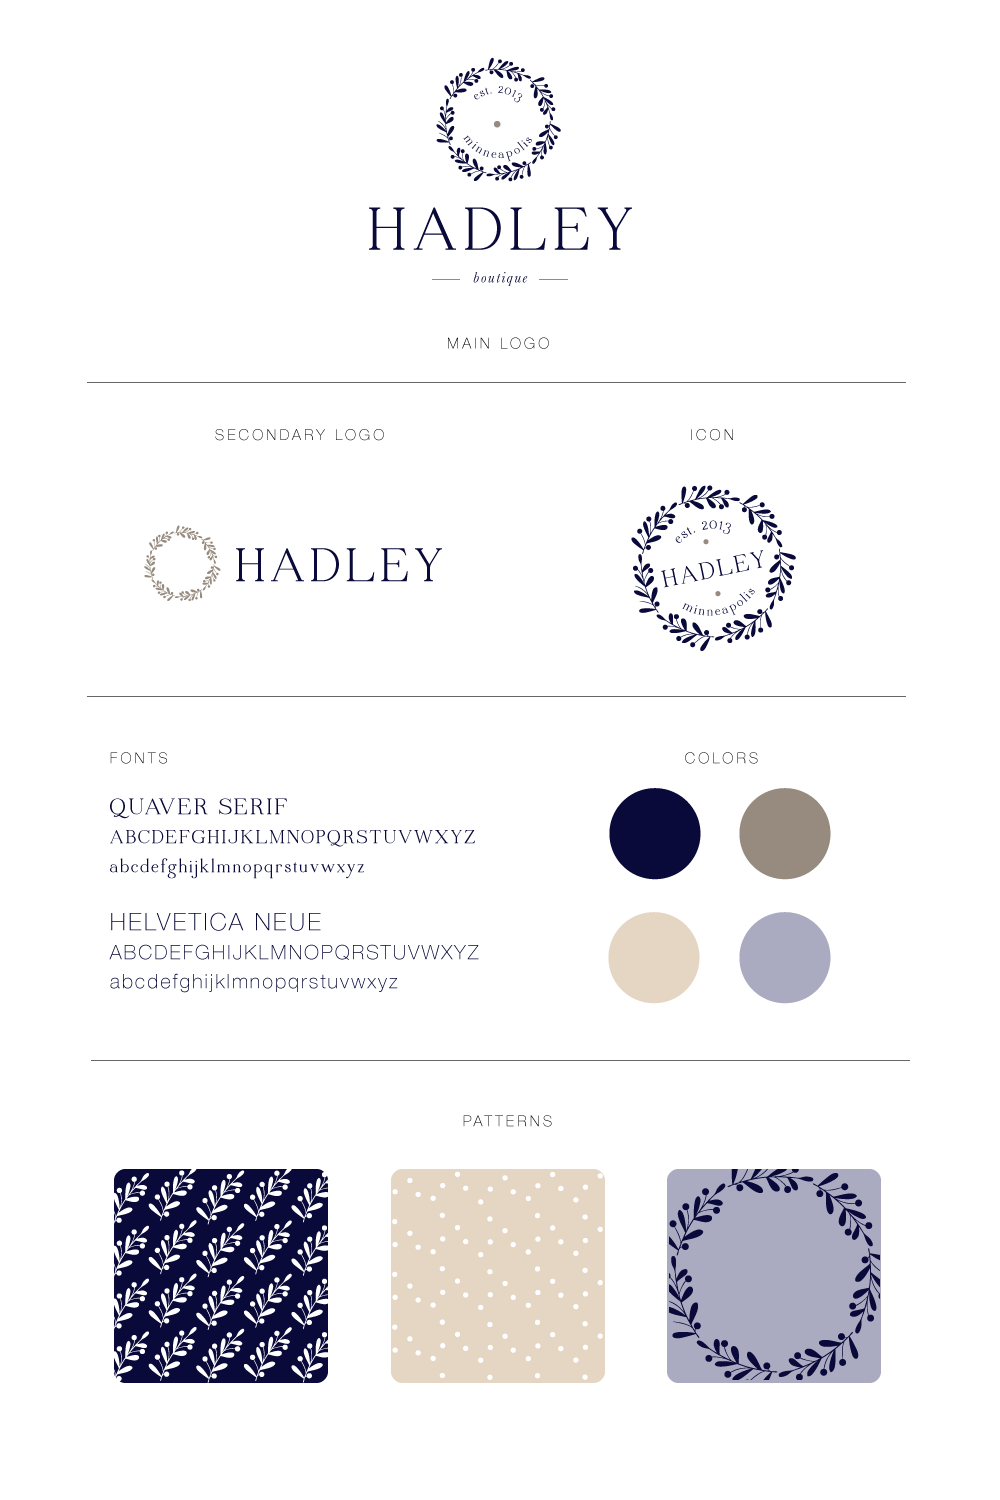 Hadley-Boutique-identity.png